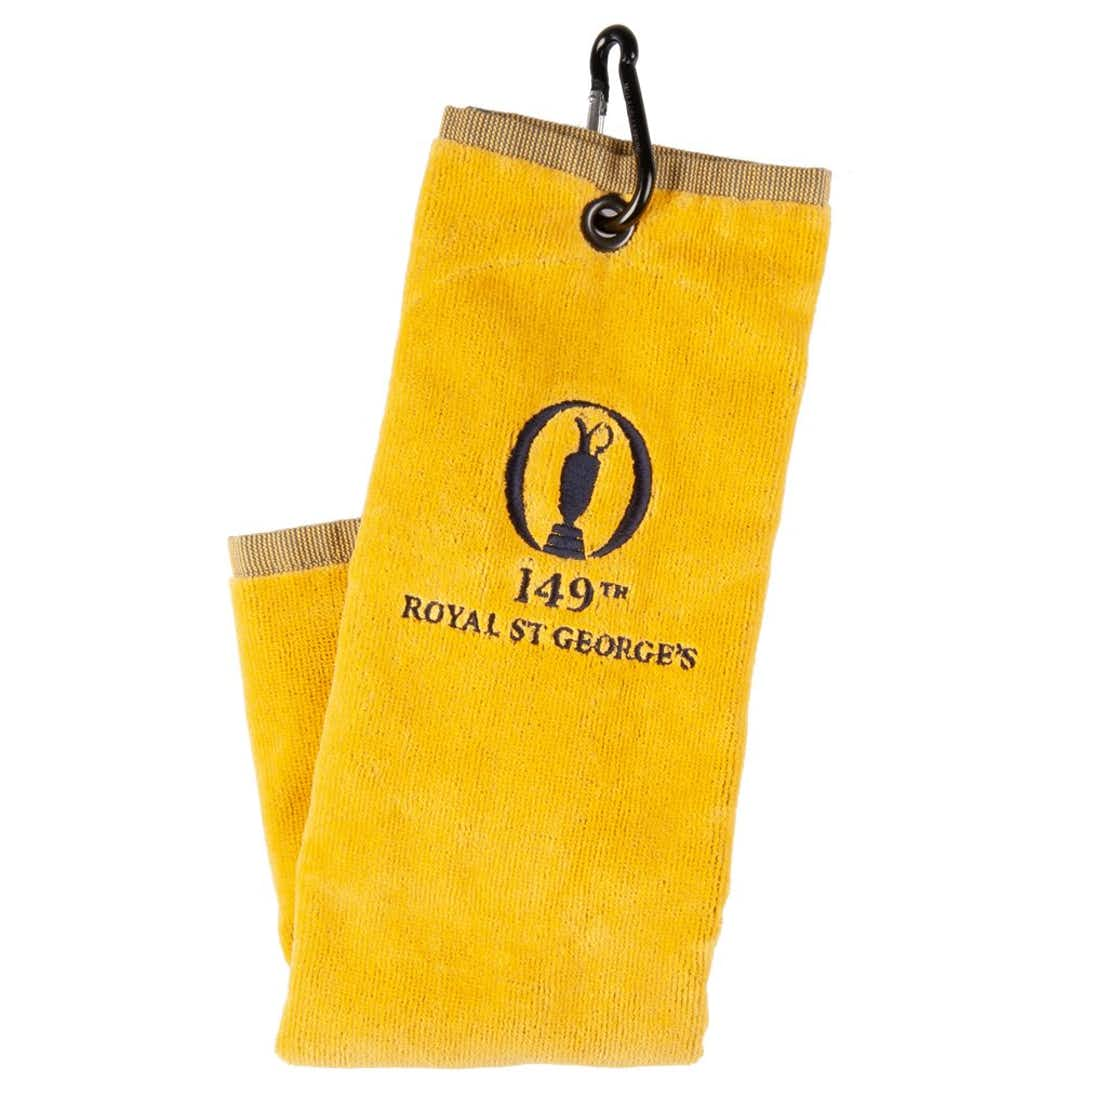 149th Royal St George's Standard Trifold Towel - Yellow